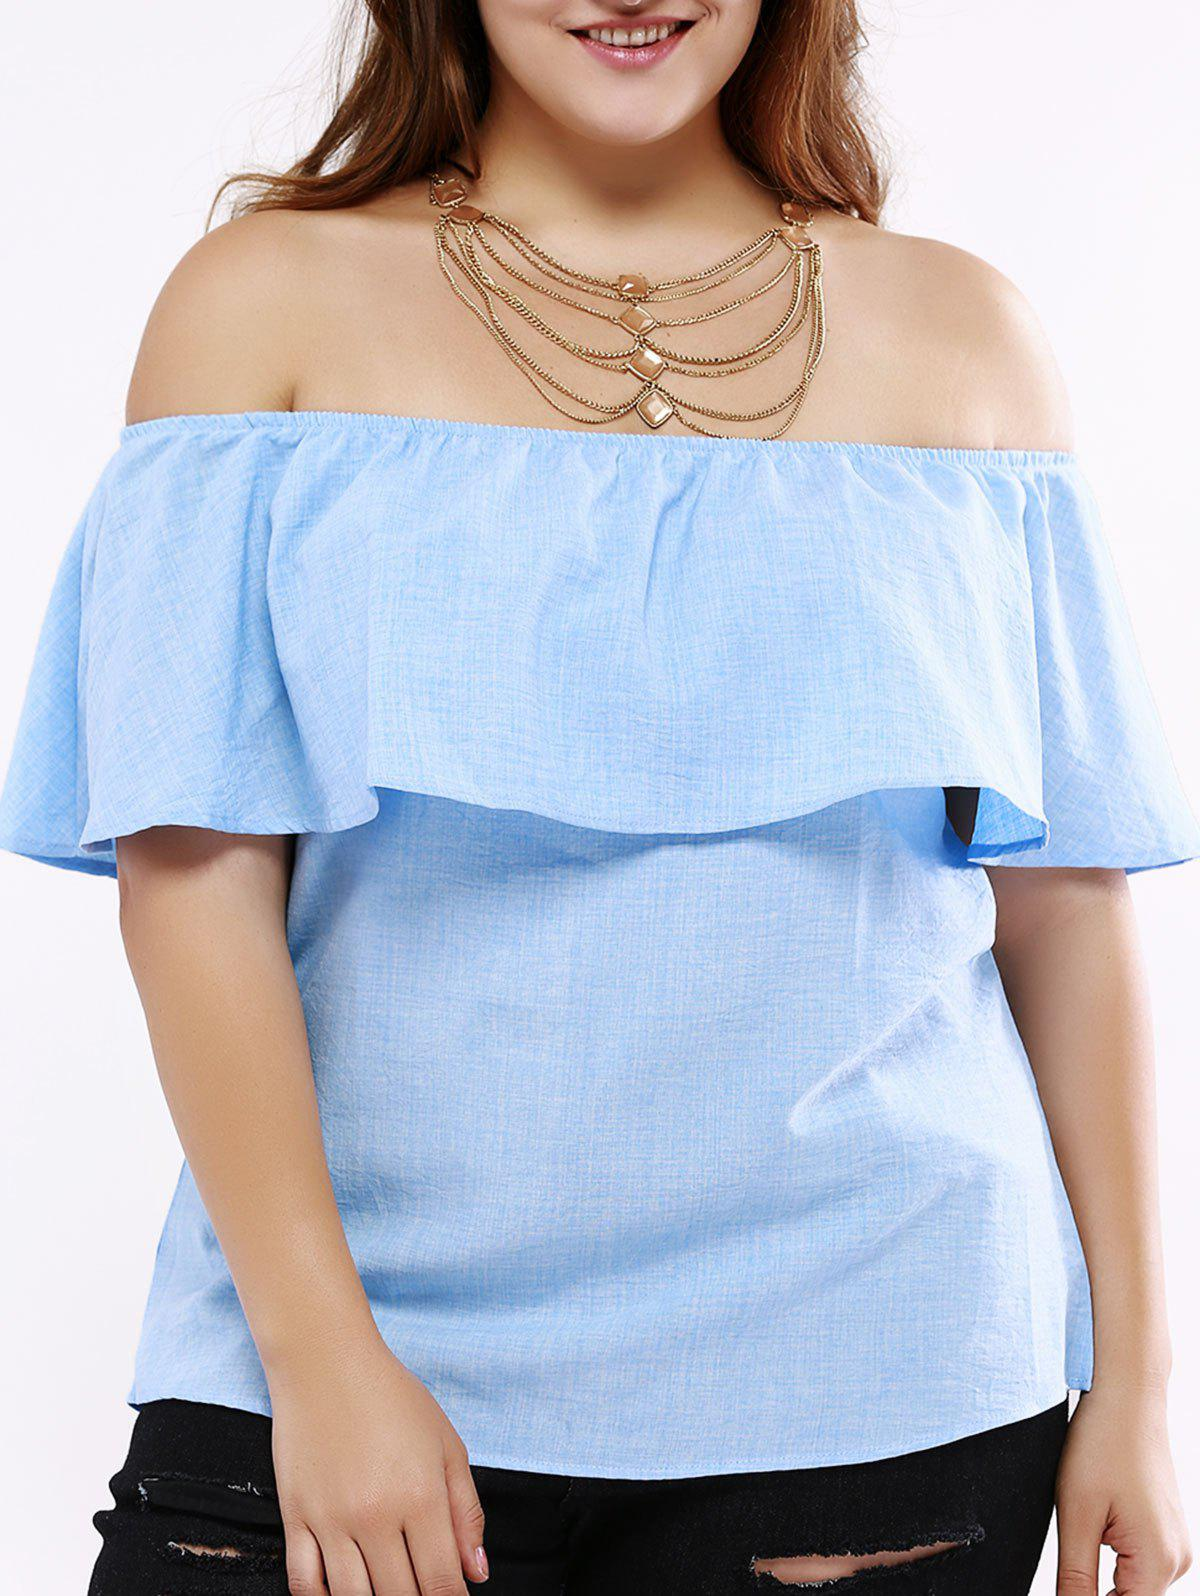 Fashionable Off-The-Shoulder Overlay Blouse For Women - LIGHT BLUE 6XL